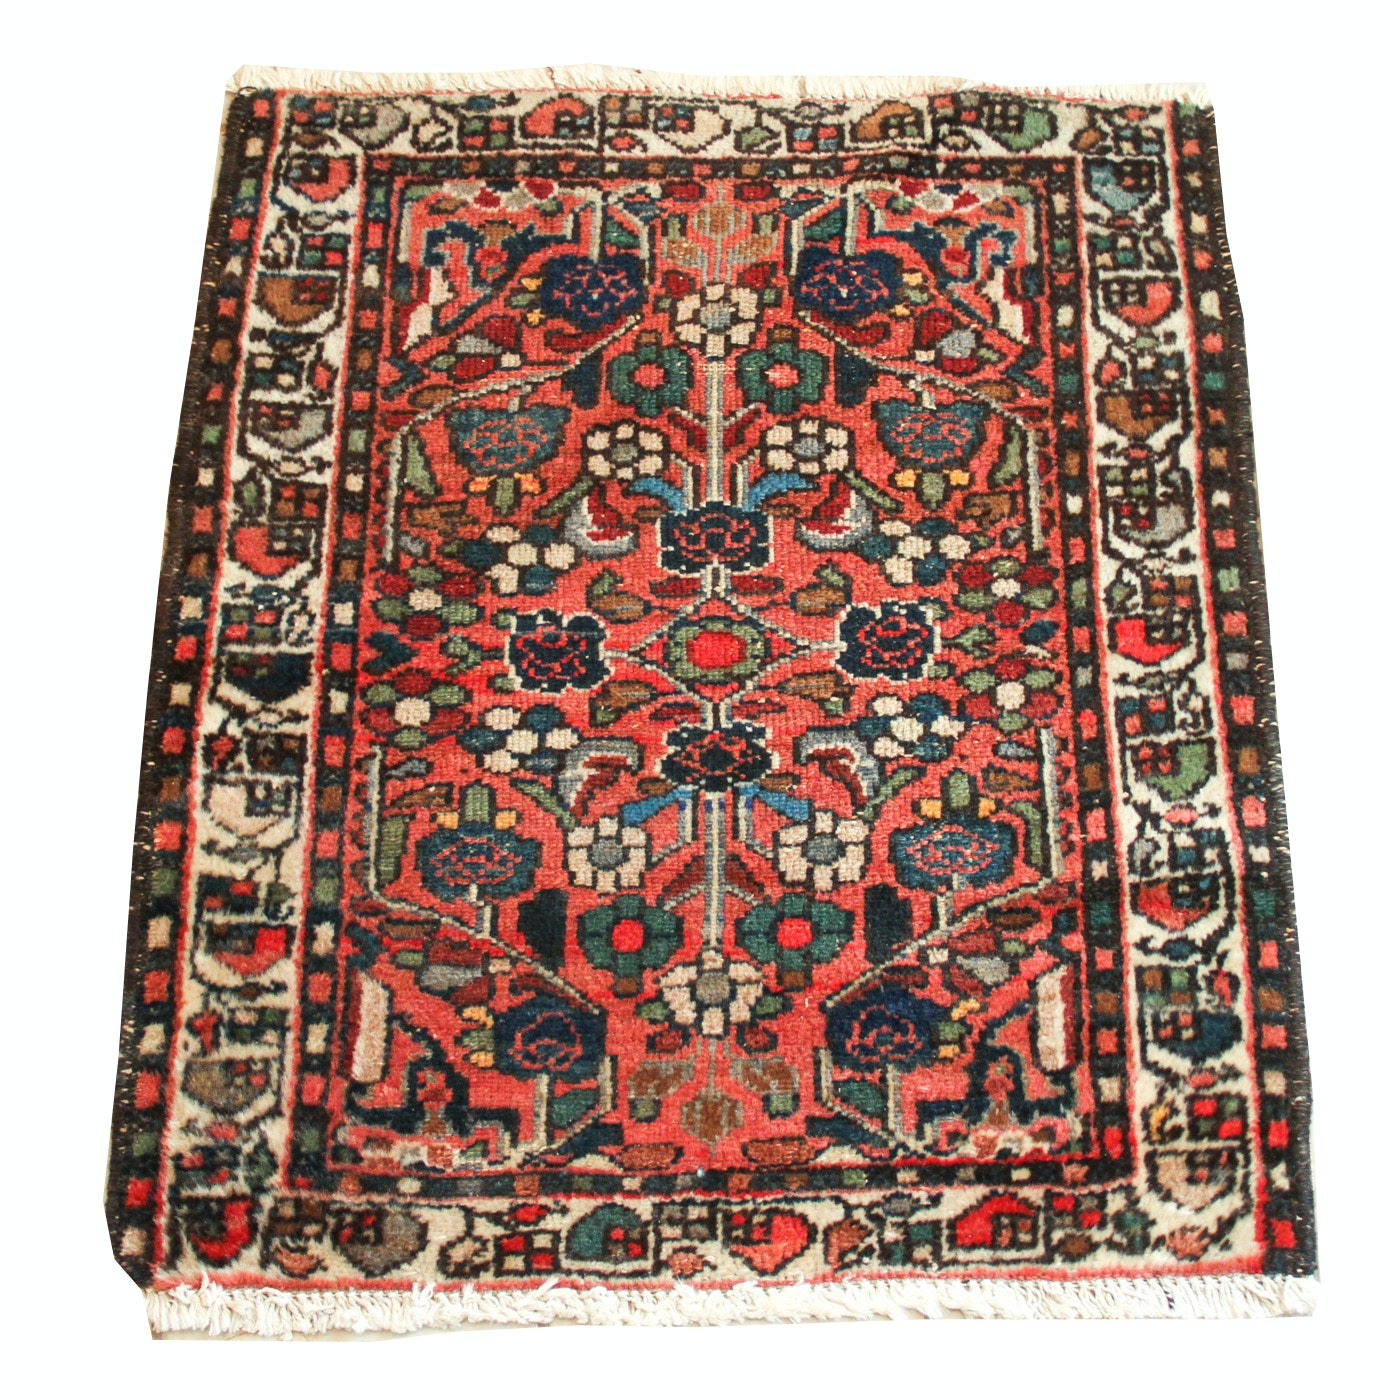 Semi-Antique Hand-Knotted Kazak Accent Rug